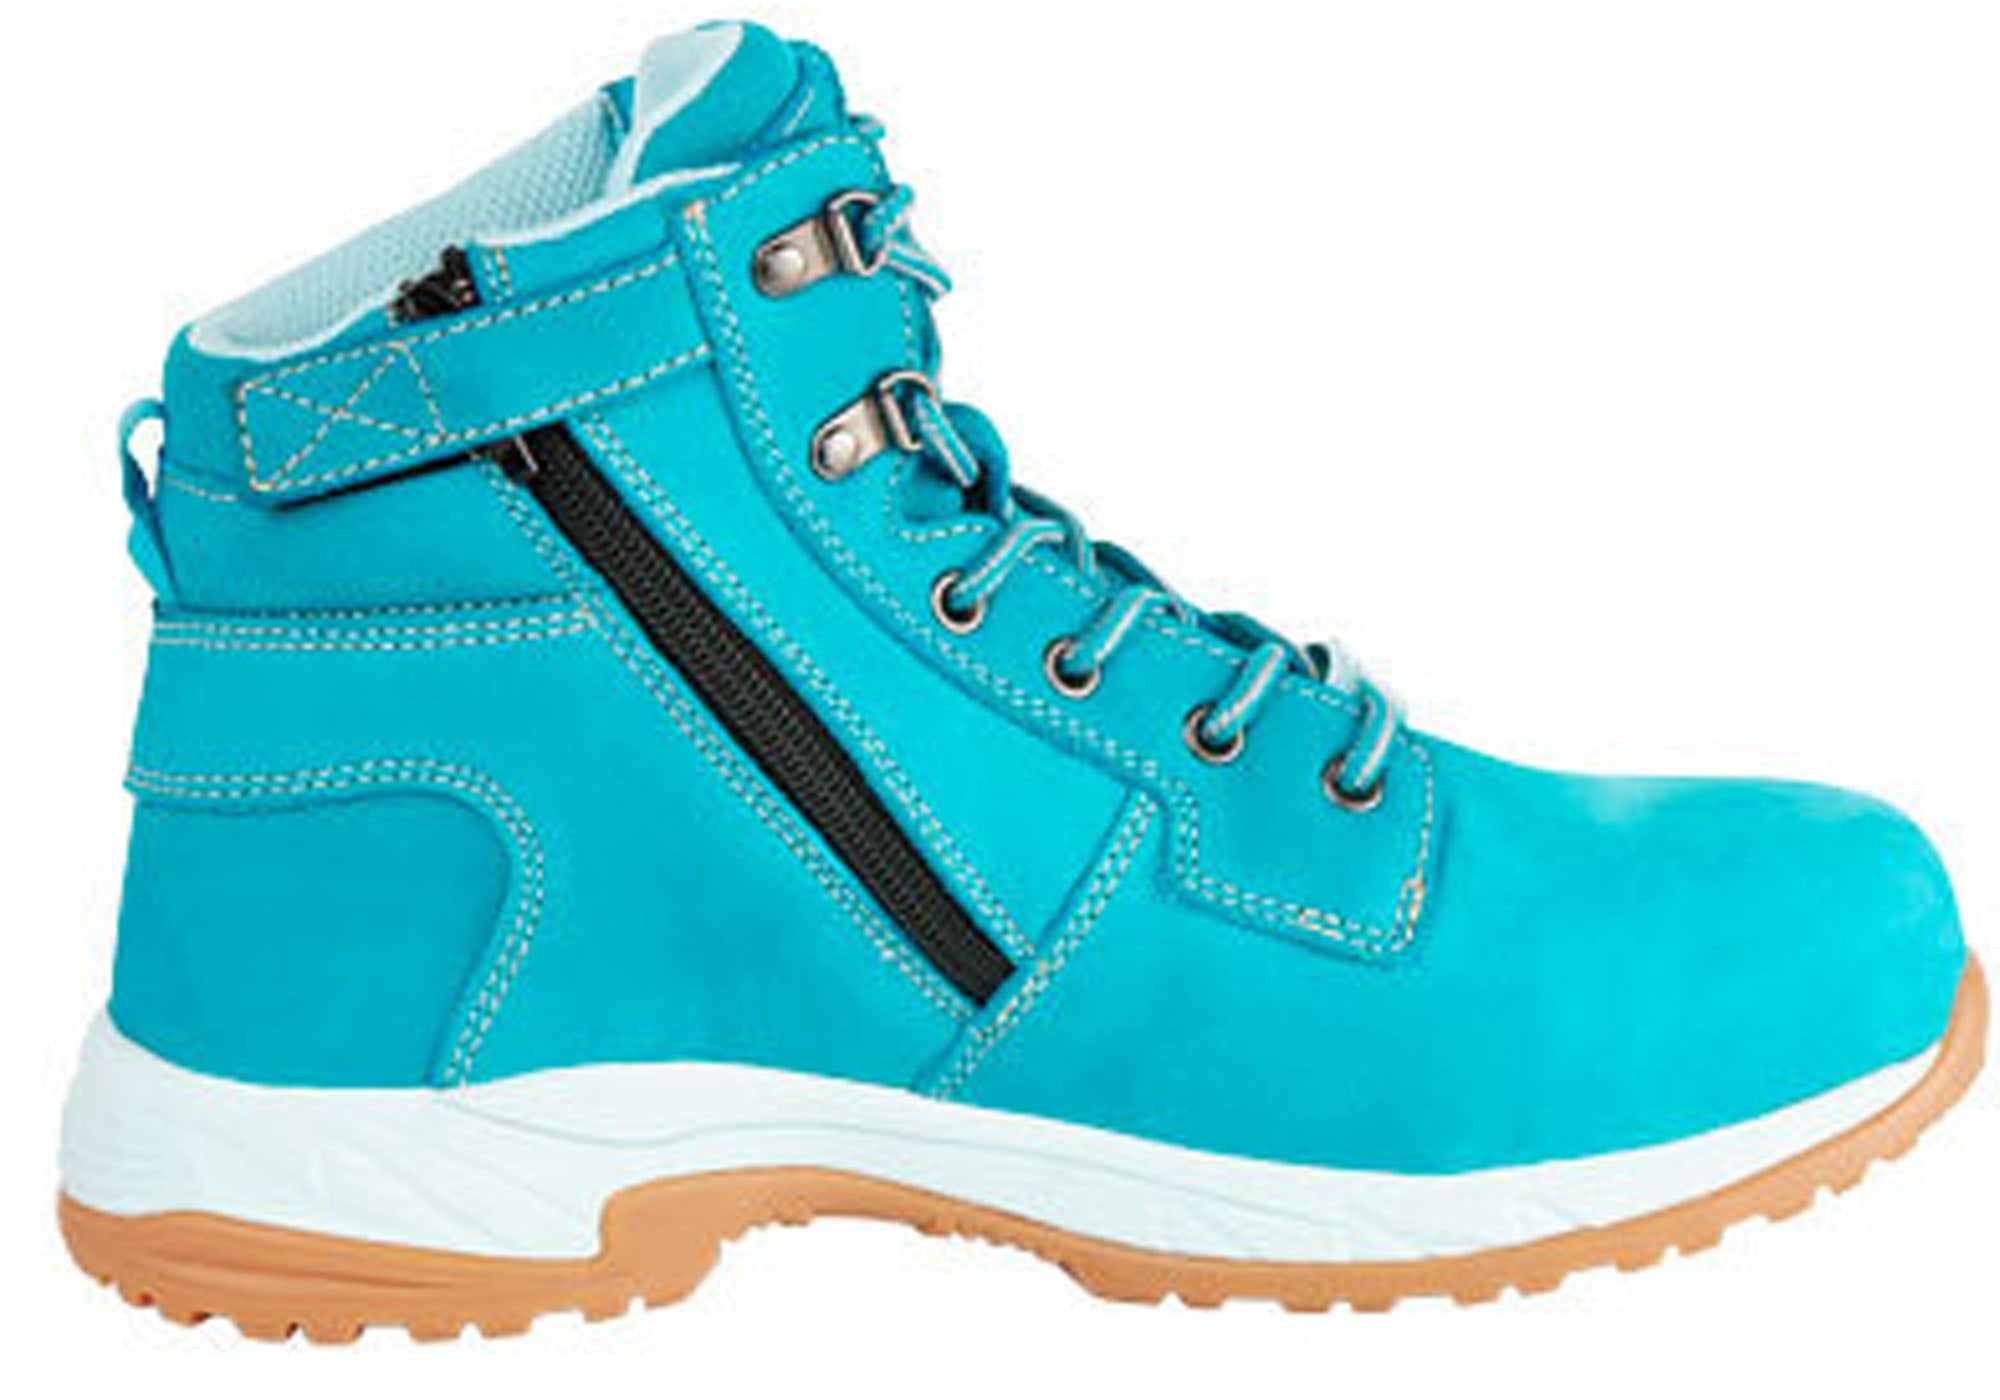 440712f0a34 King Gee Womens Tradie Zip Work Boots